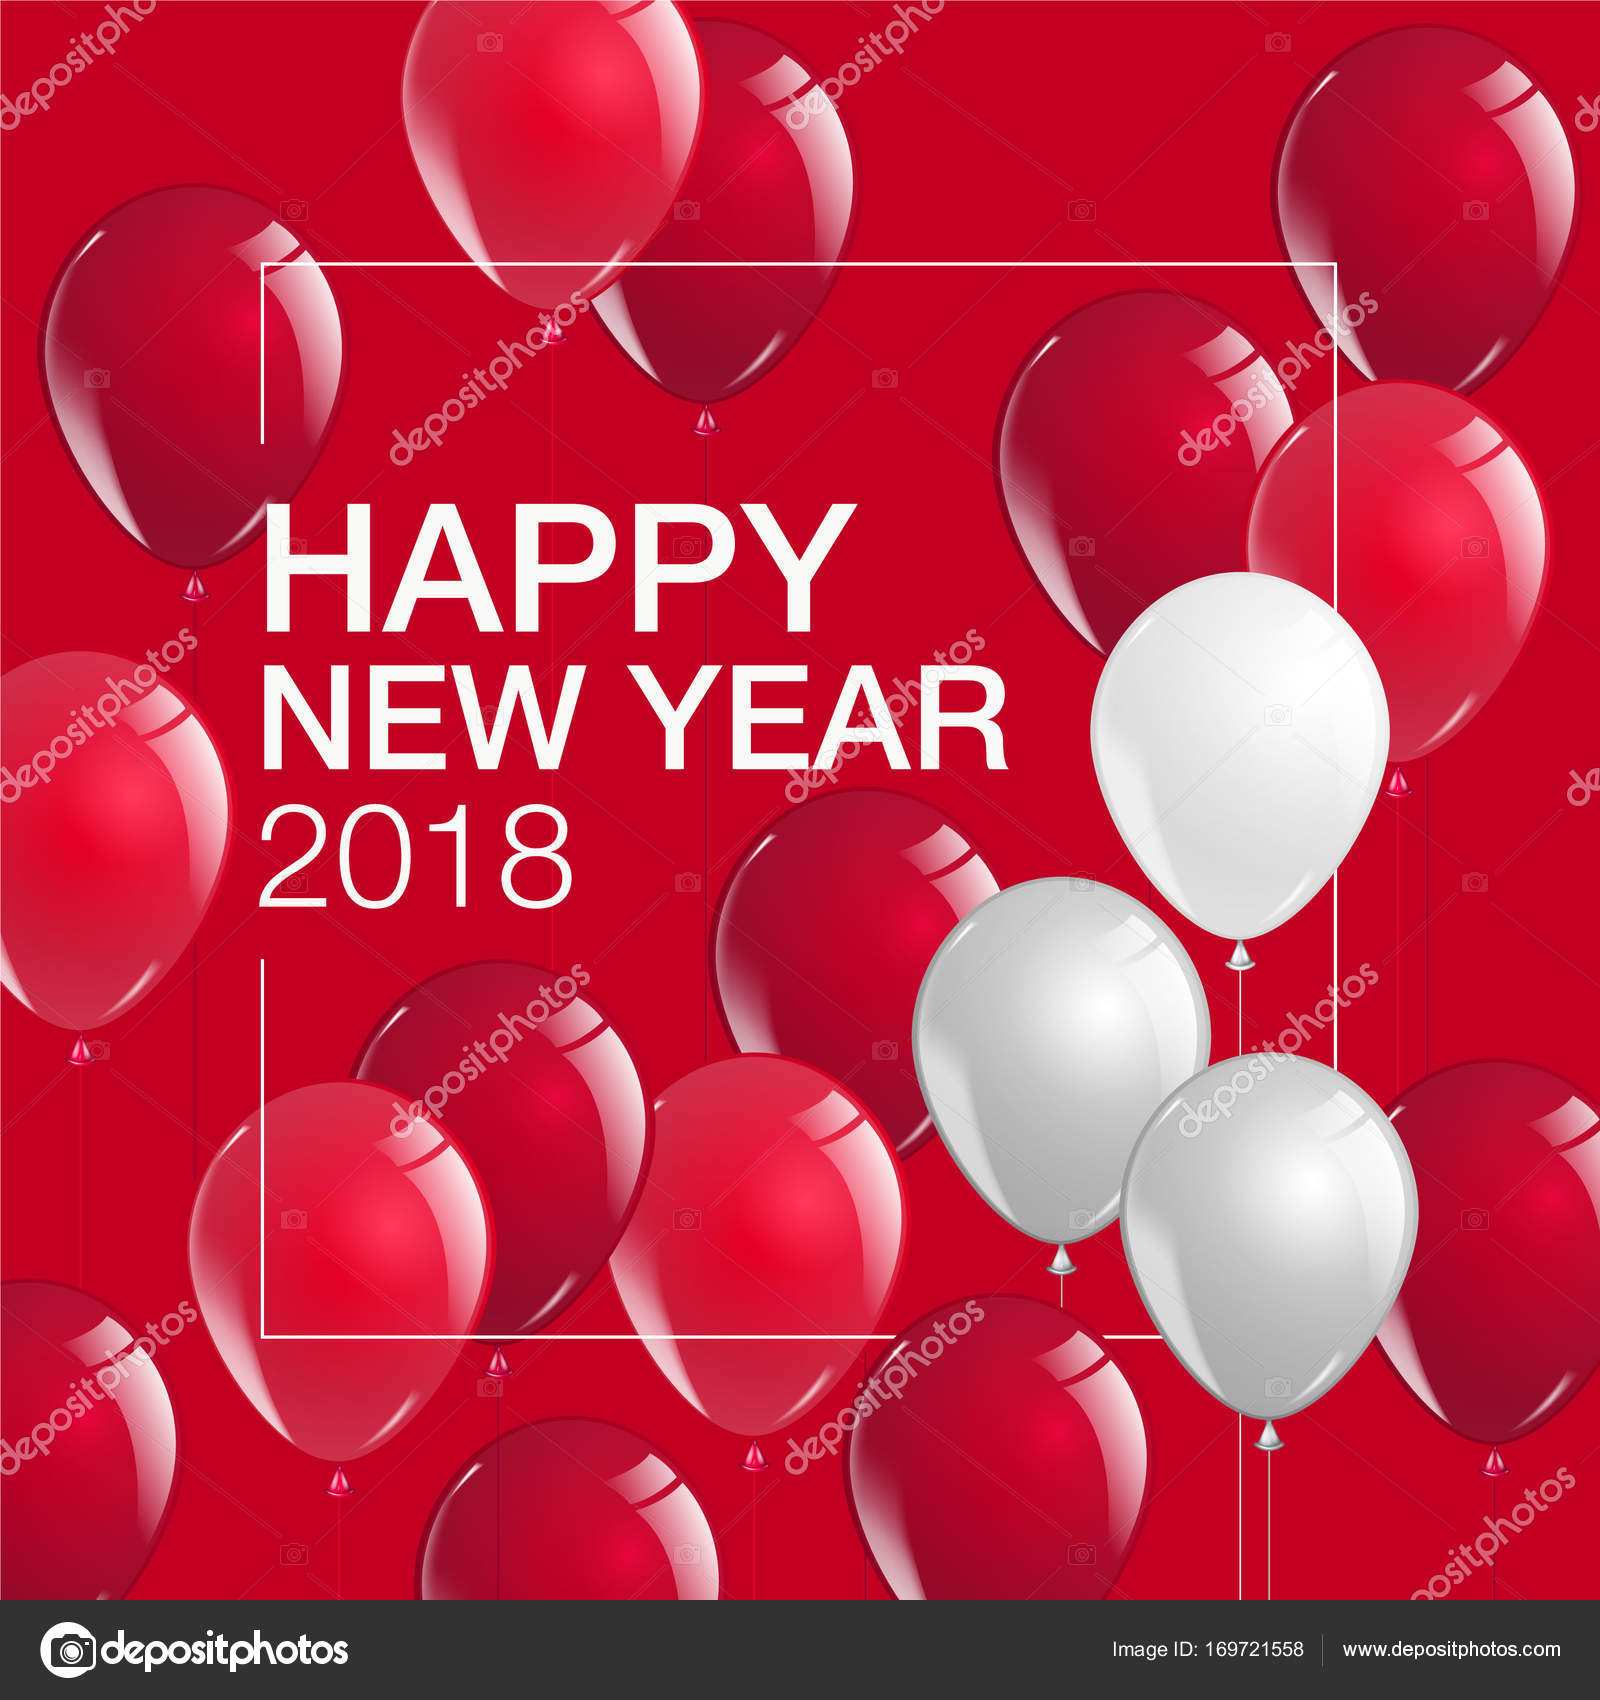 happy new year 2018 celebrate balloons template layout vecto